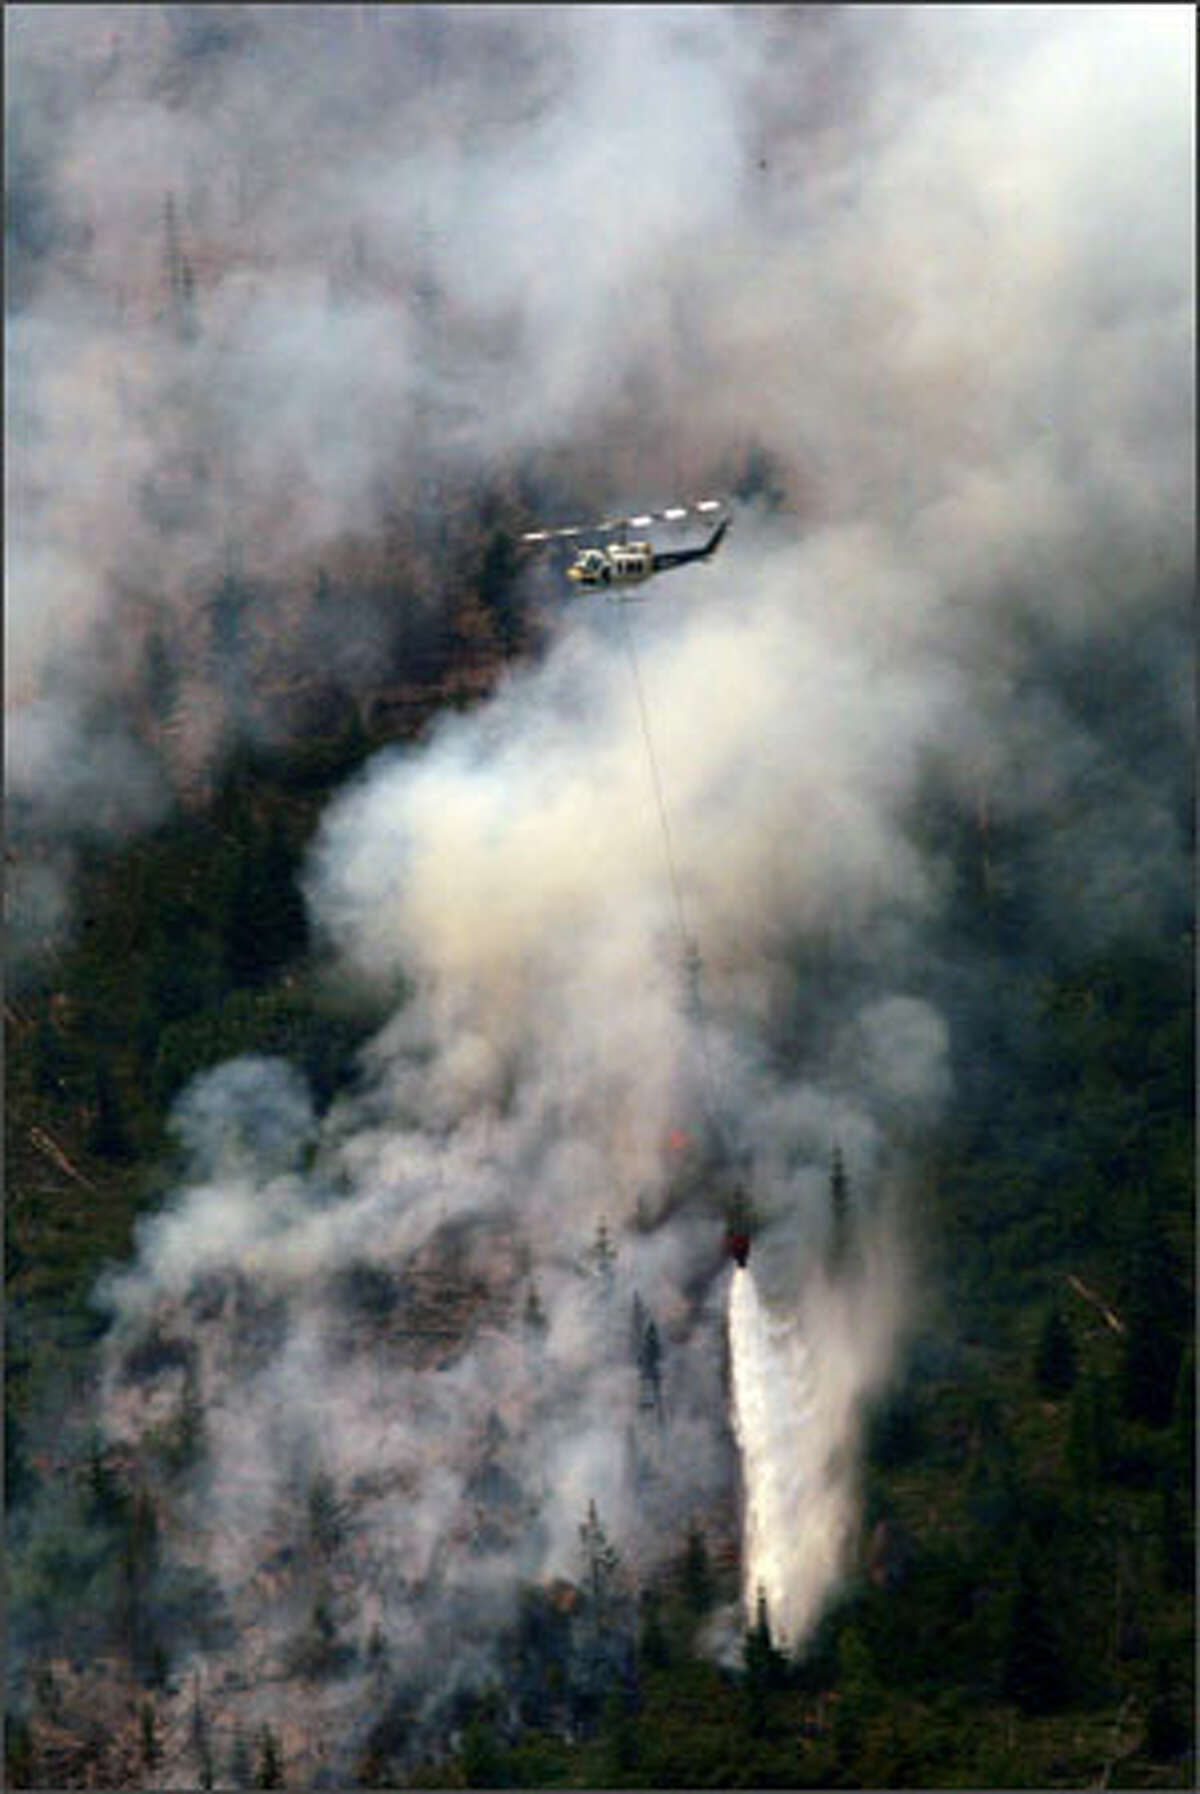 Helicopters drop water on a lightning-sparked wildfire near Leavenworth, in the Icicle Creek area.